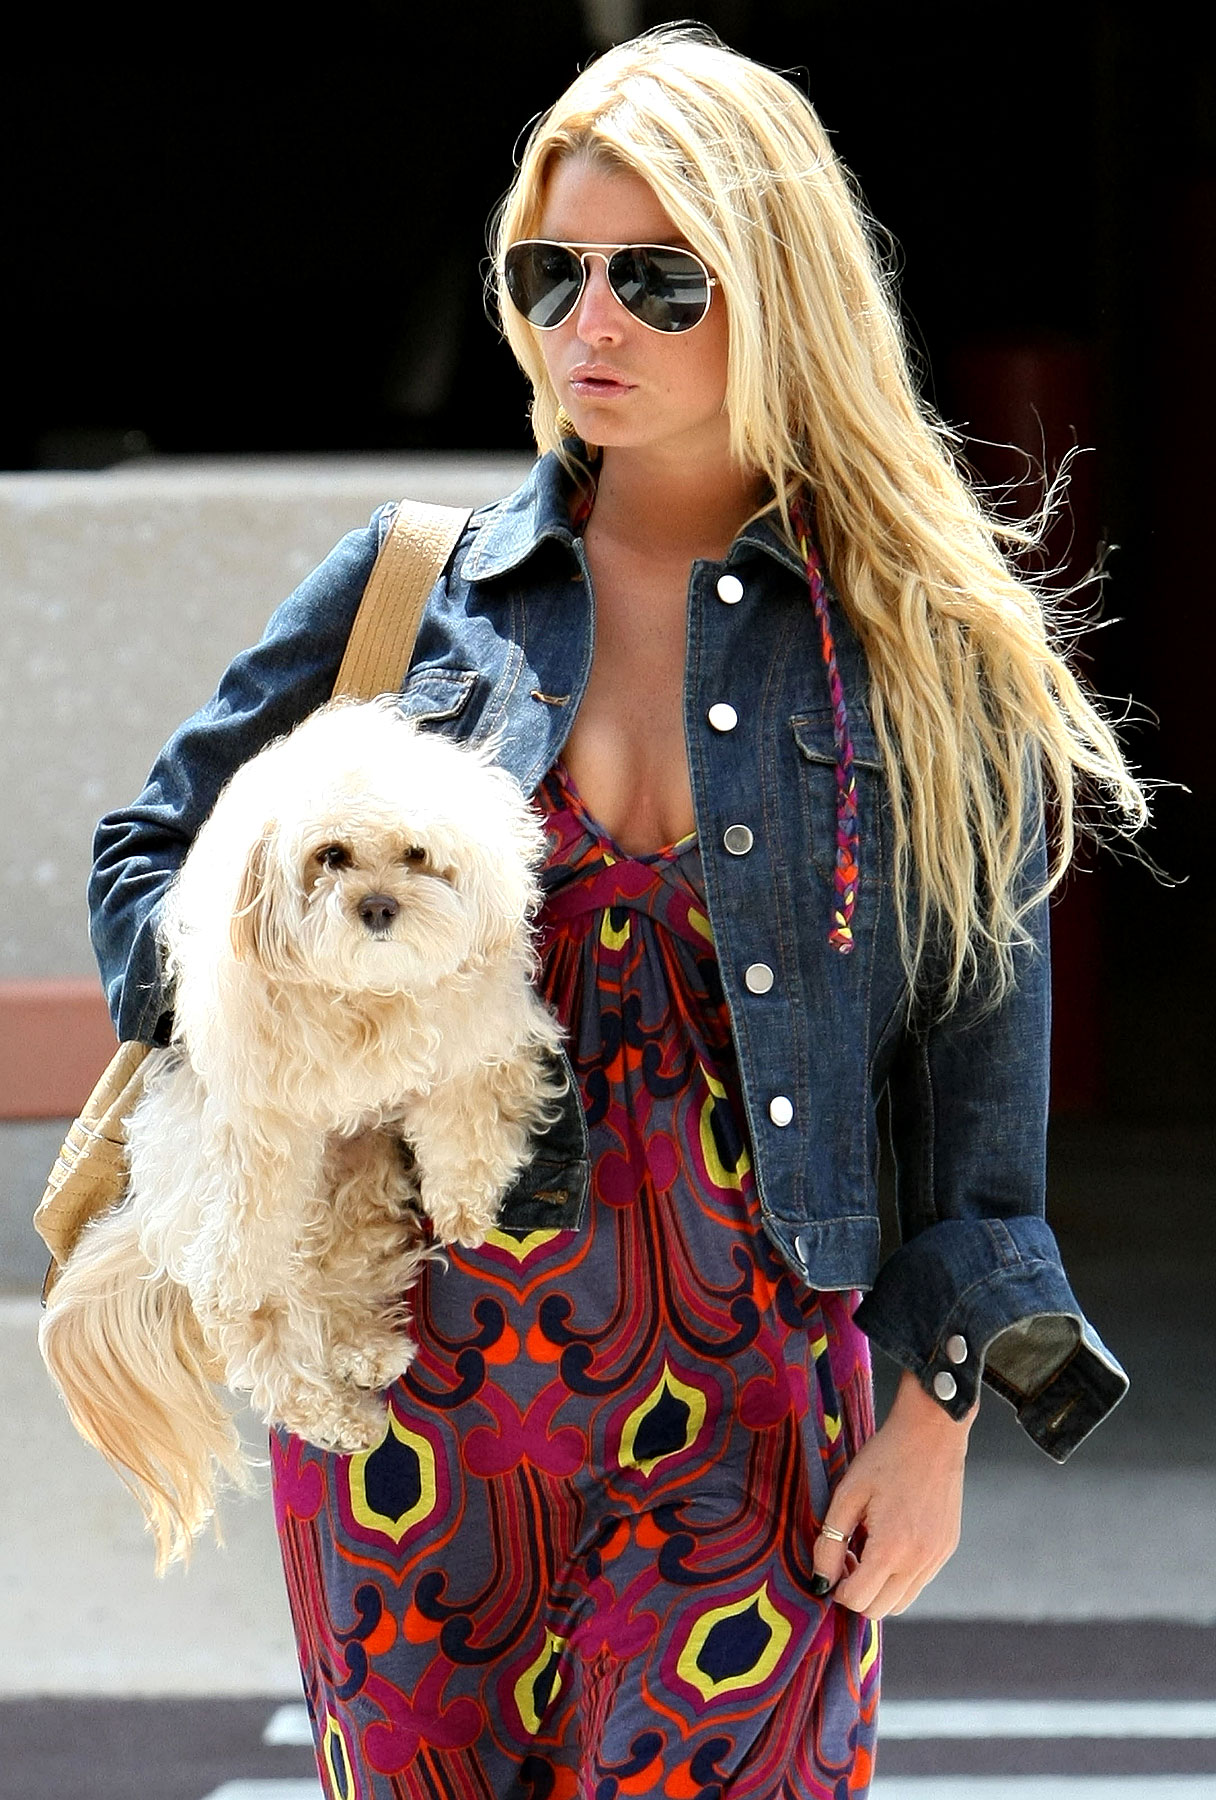 Search Mission Called Off for Jessica Simpson's Dog